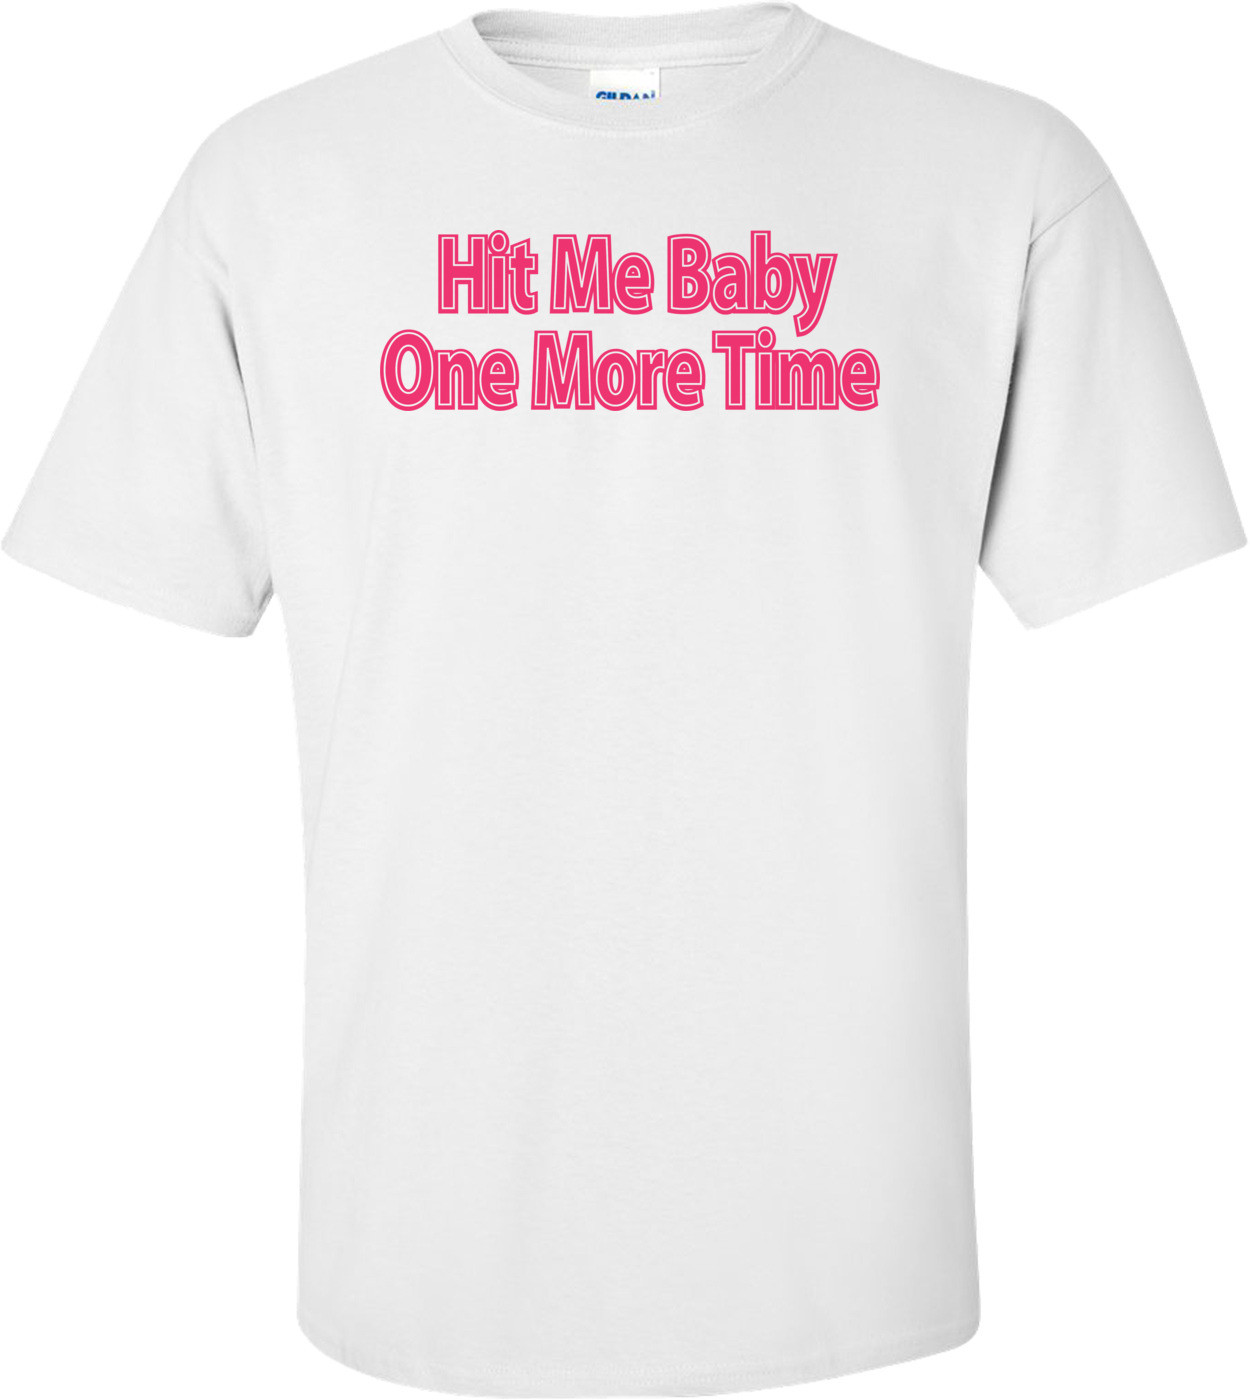 Hit Me Baby One More Time T-shirt